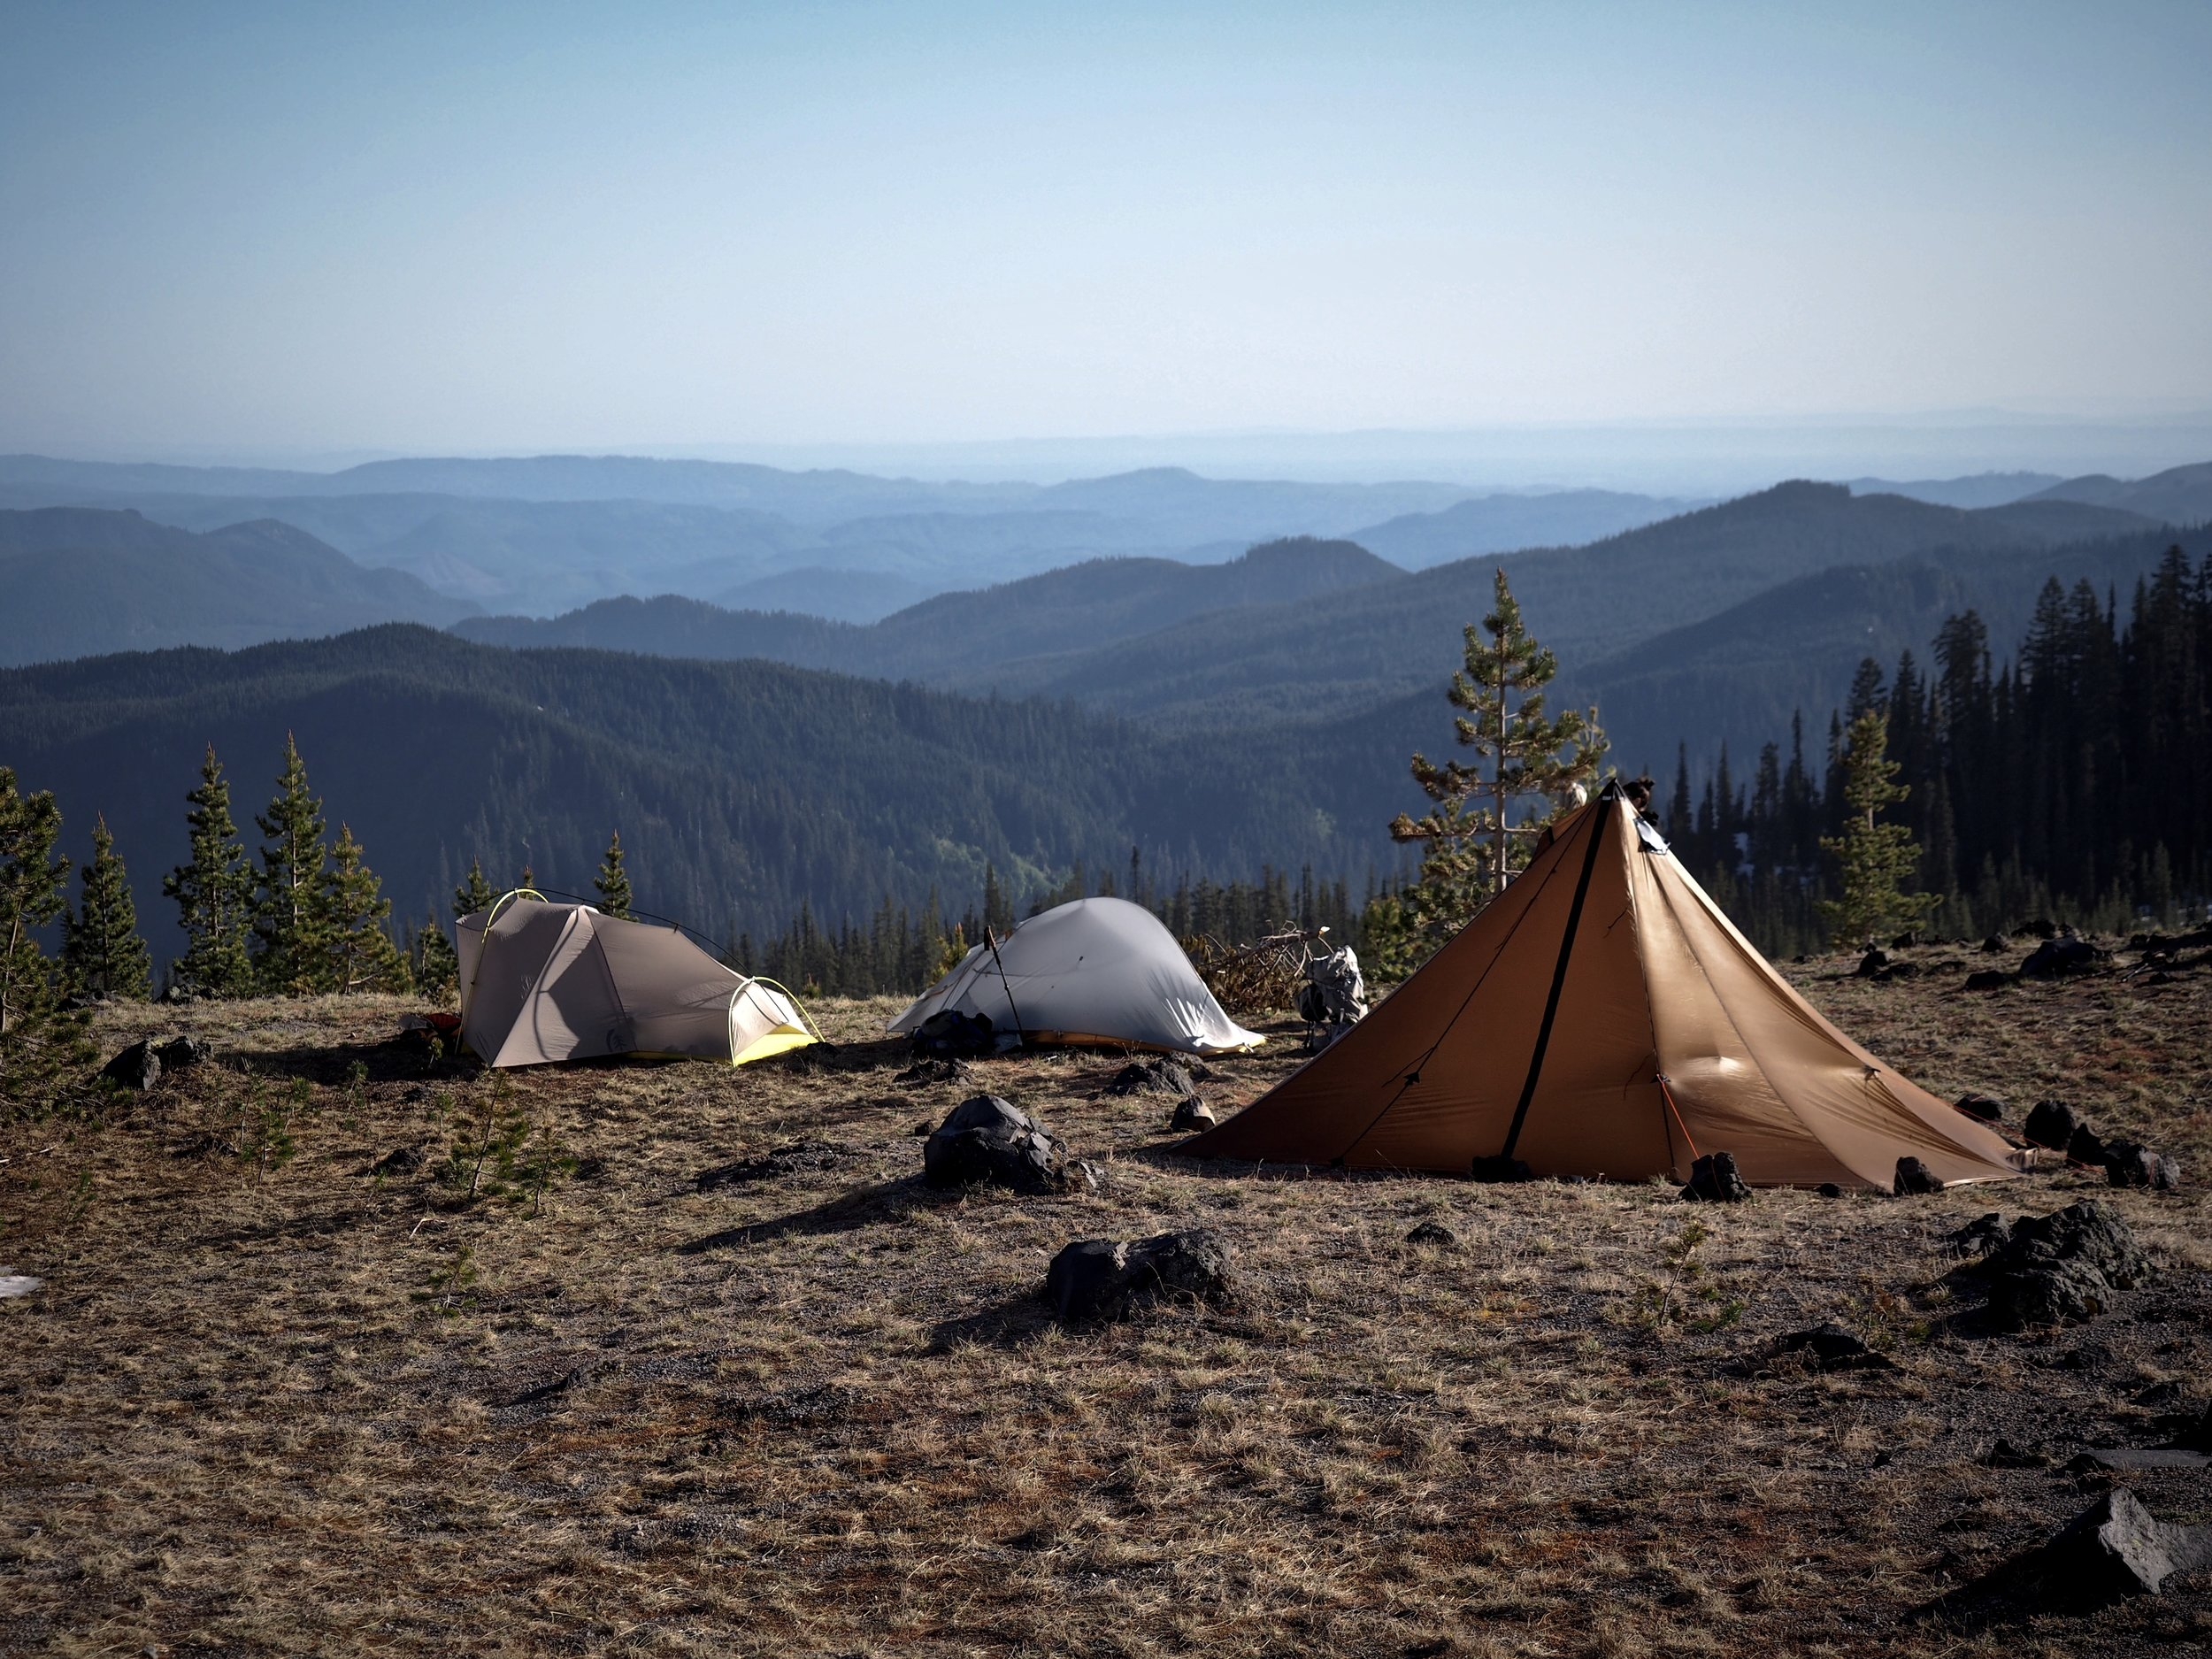 Tents, tarps, and bivvy's all have their place in the backcountry.